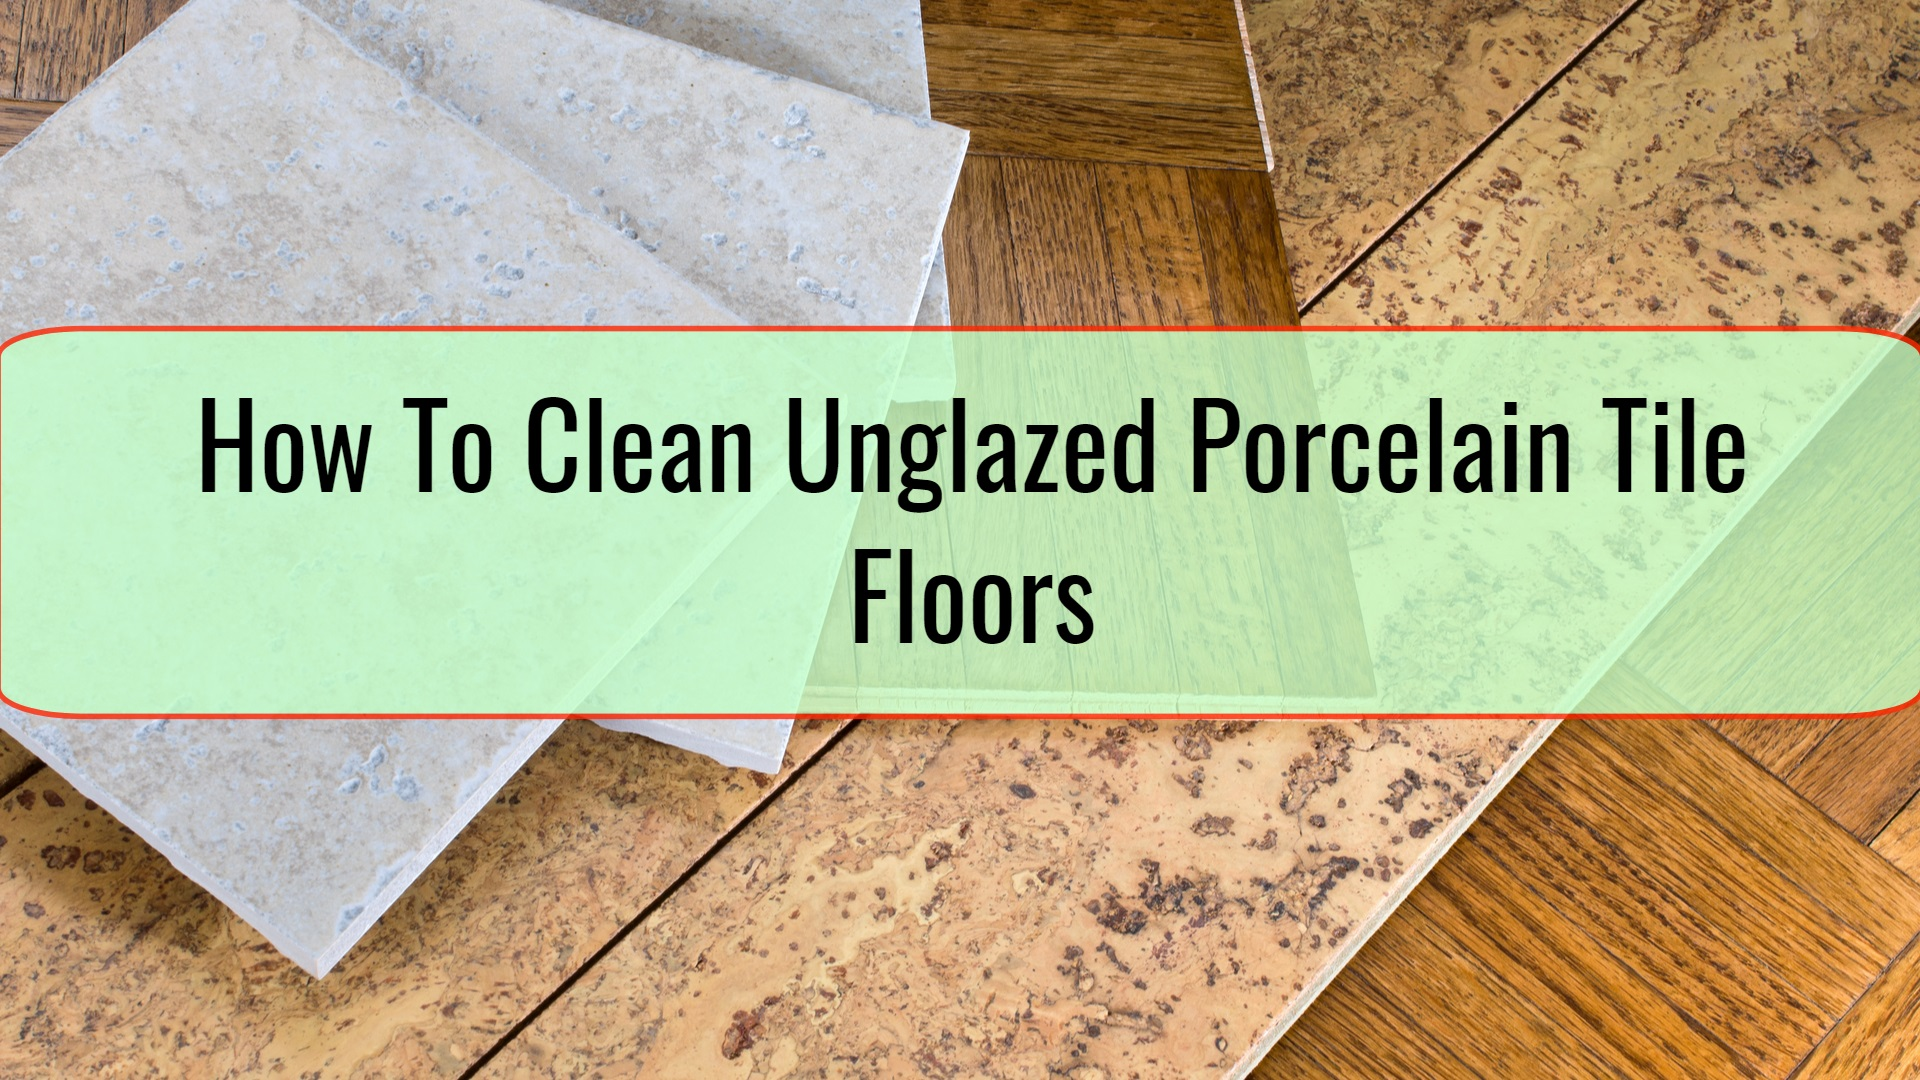 How To Clean Unglazed Porcelain Tile Floors Home Tips